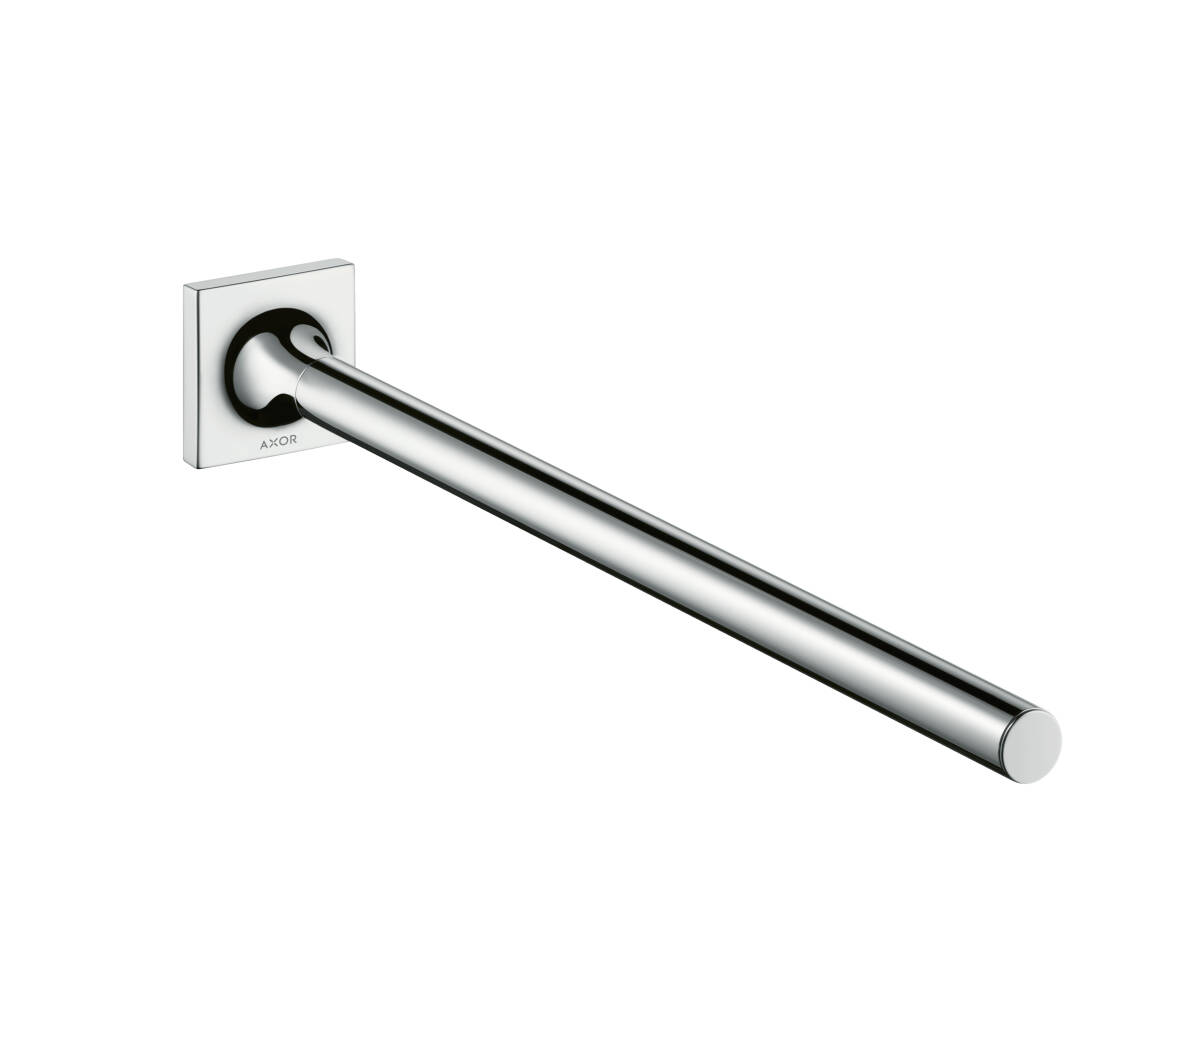 Towel holder, Chrome, 42720000